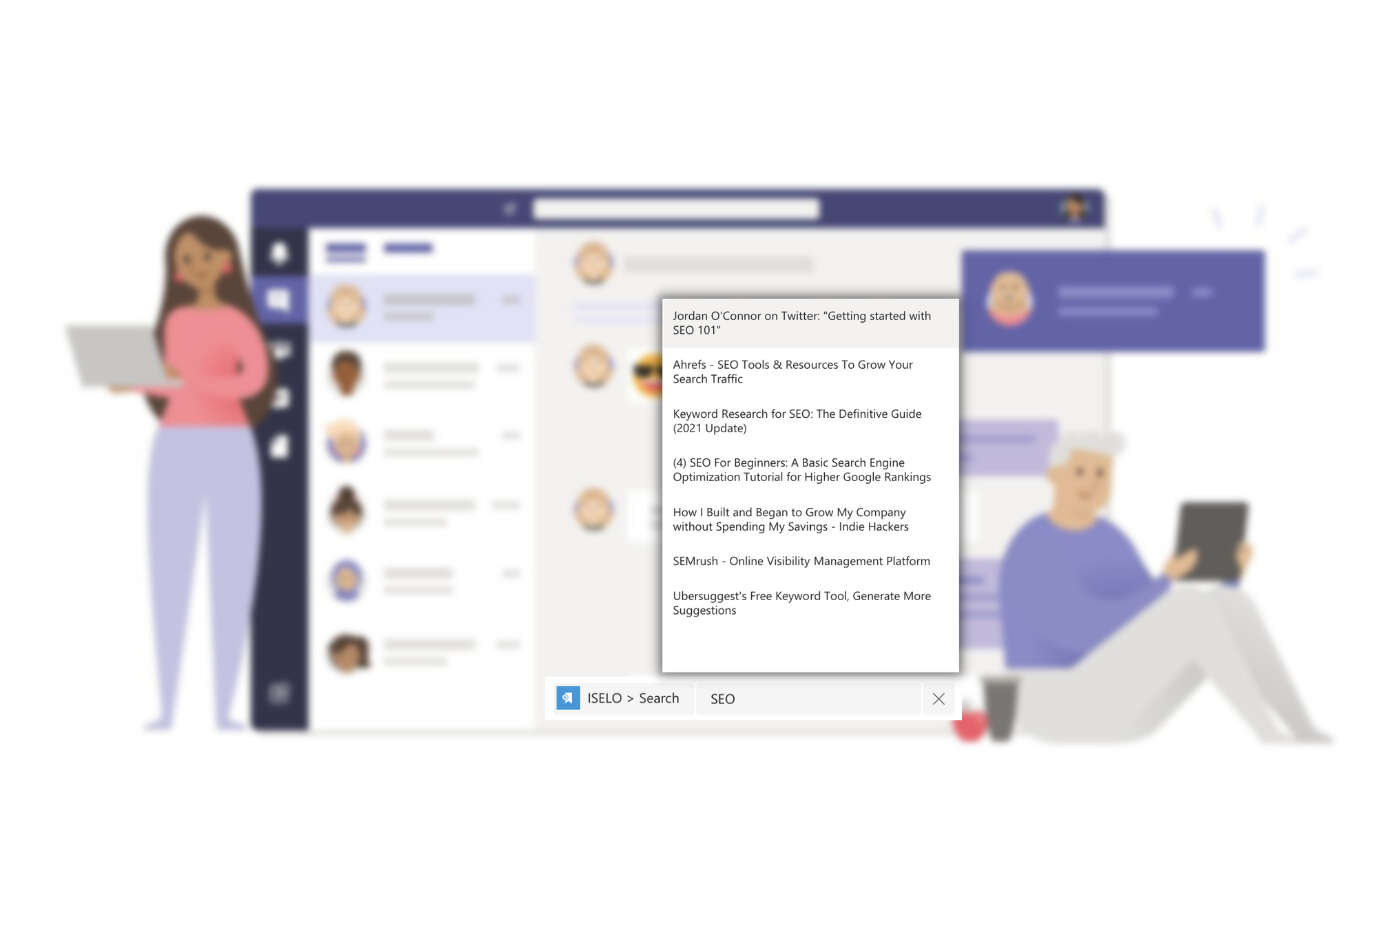 Search contents from ISELO while chatting in Microsoft Teams and post to fellow members as needed